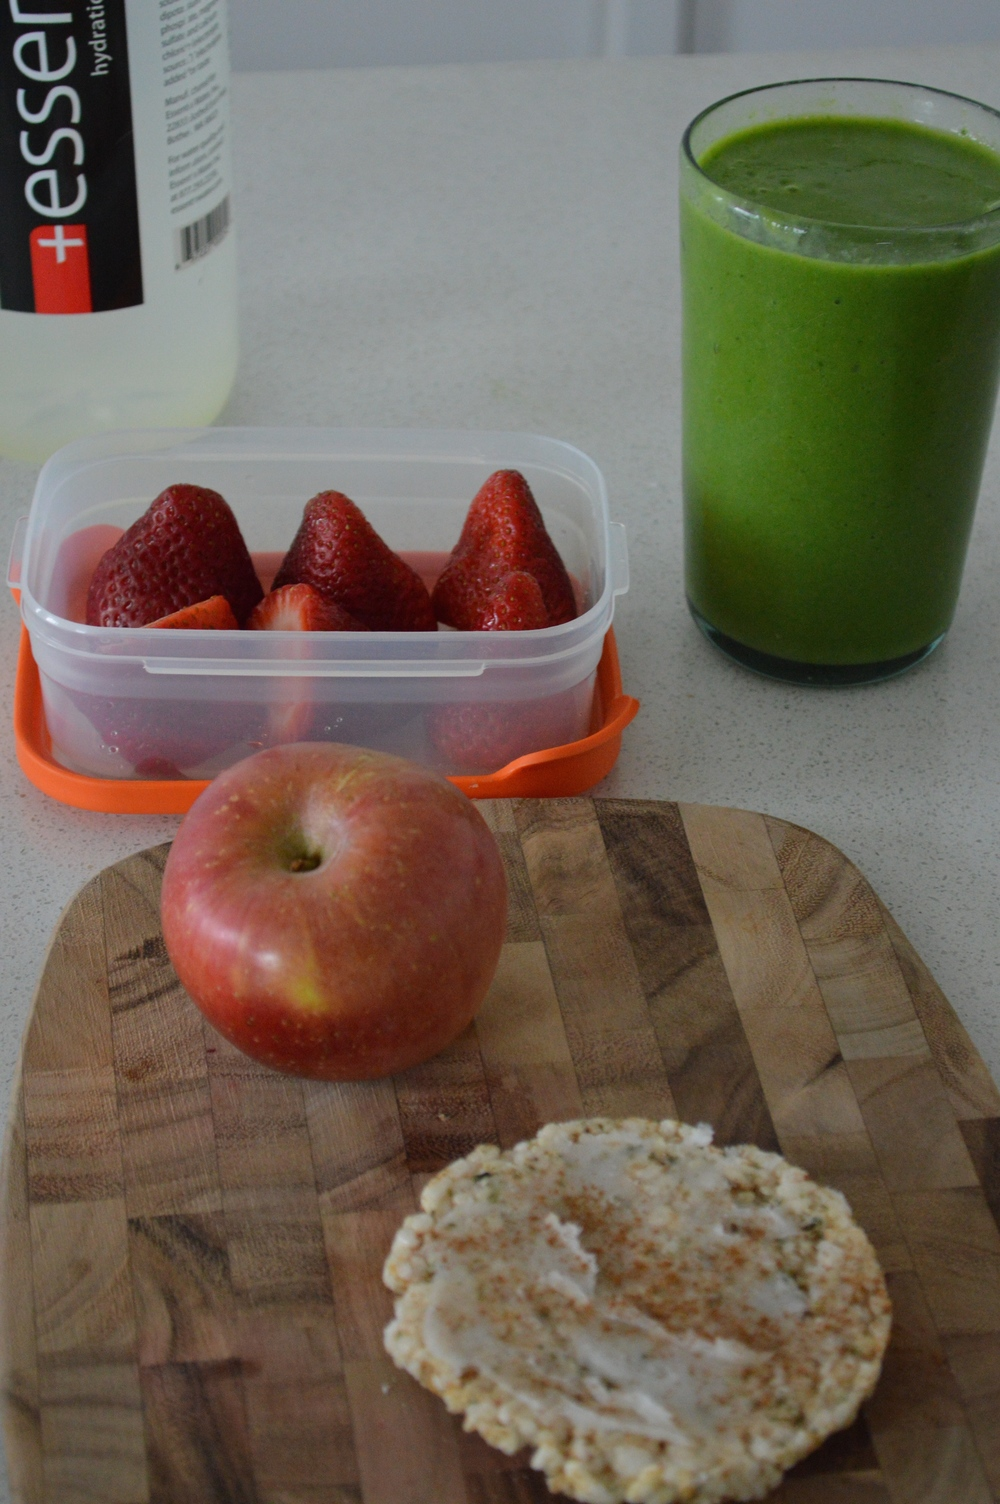 Green Smoothie for the road | Strawberries | Gala Apple | Rice Cake + Coconutt Oil & Cinnamon